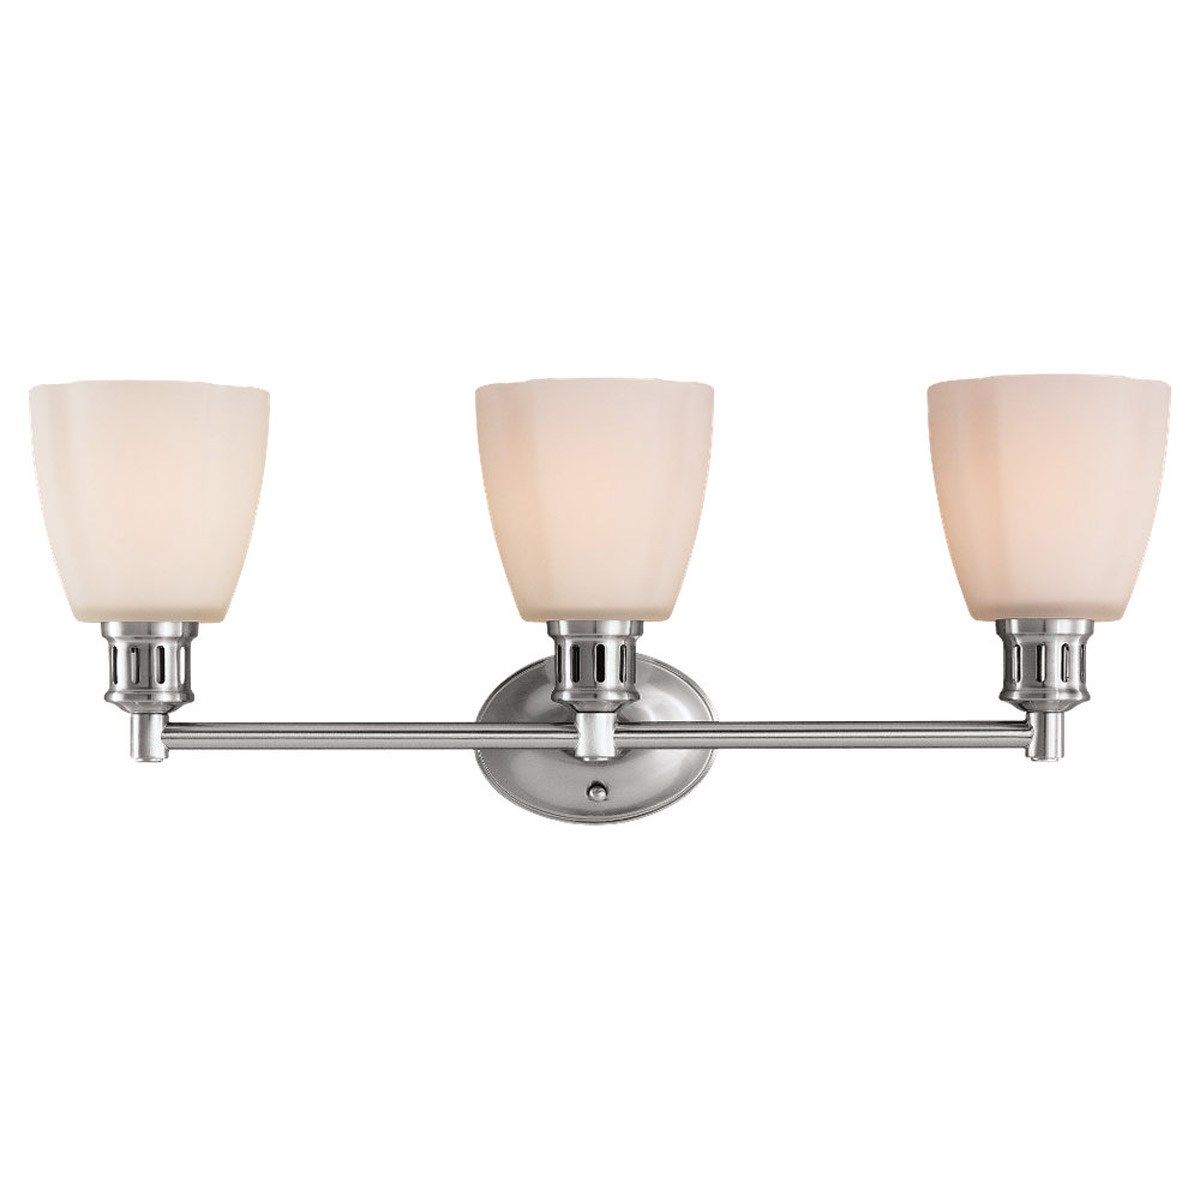 Sea Gull Lighting Century 3 Light Bath Vanity in Brushed Nickel 44475-962 photo